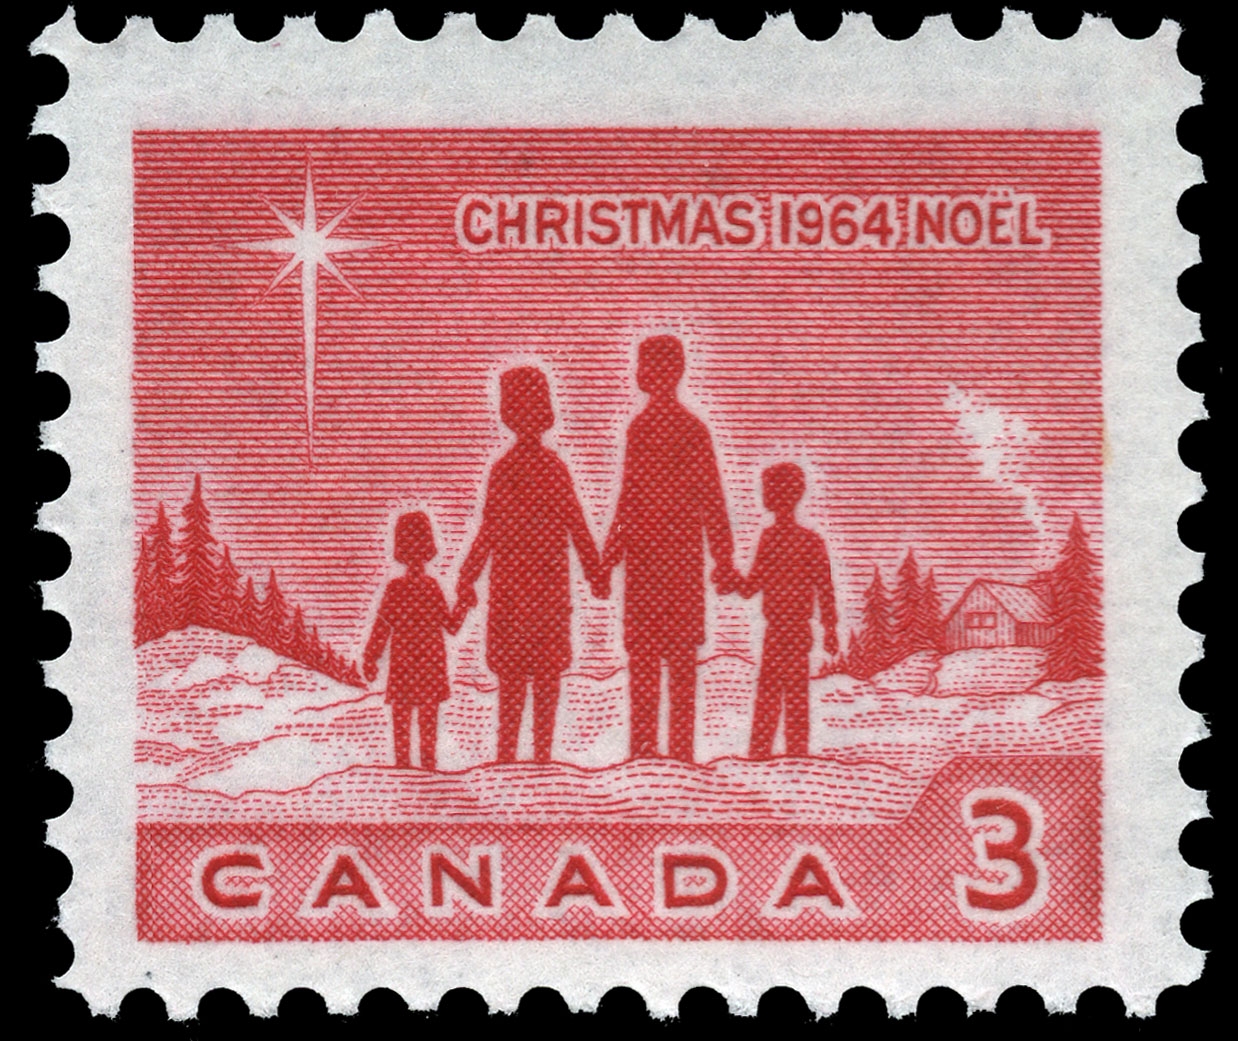 Family Canada Postage Stamp